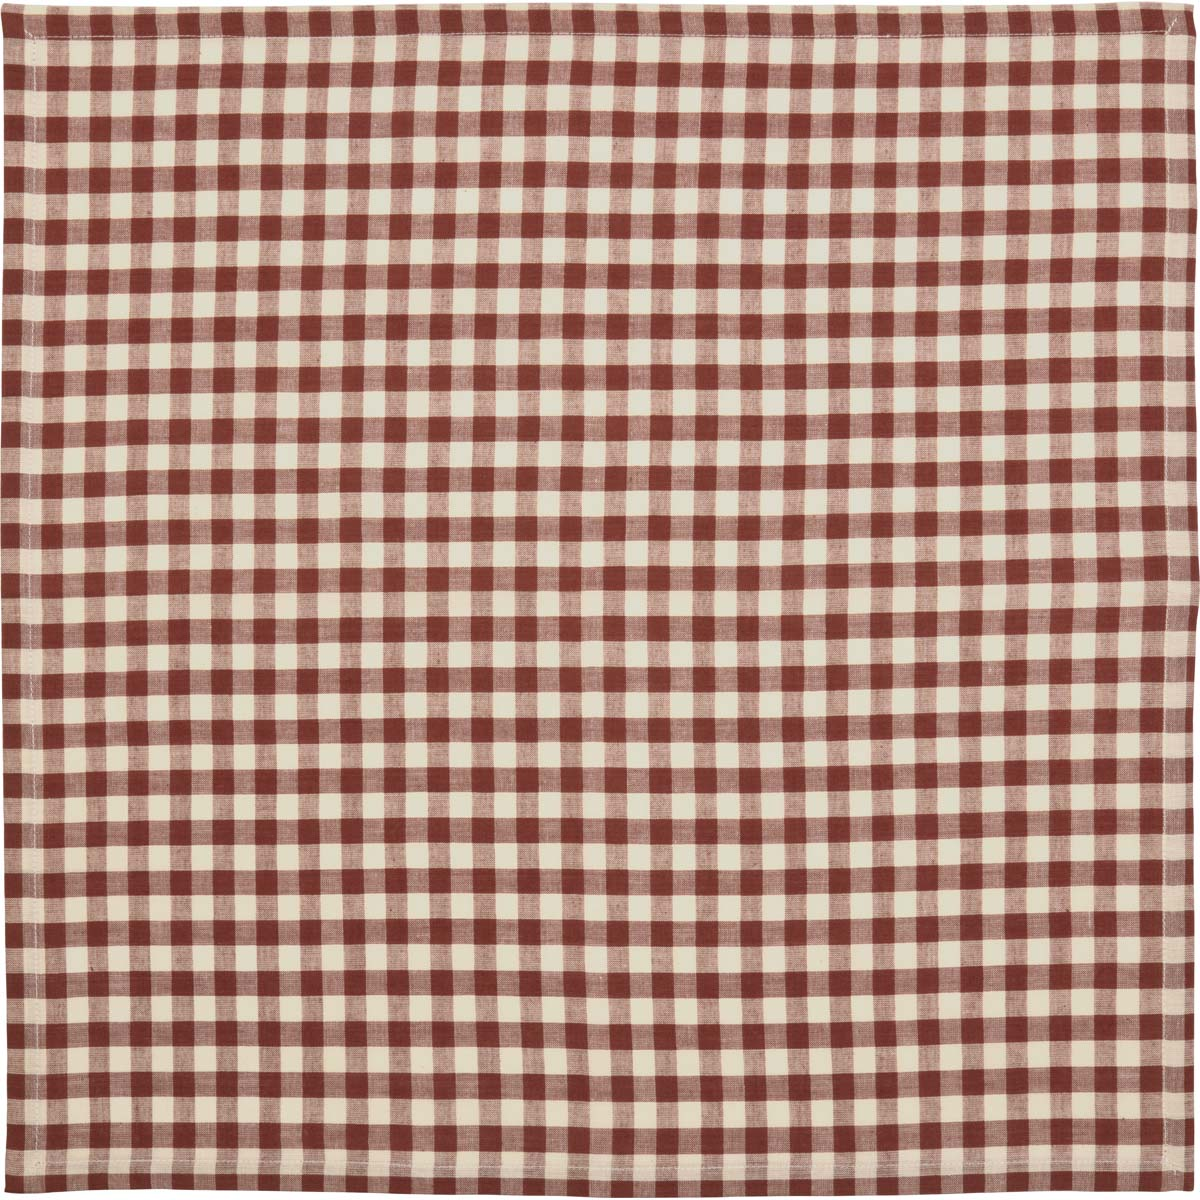 Katie Rust Napkin Set of 6 18x18 - Woodrol